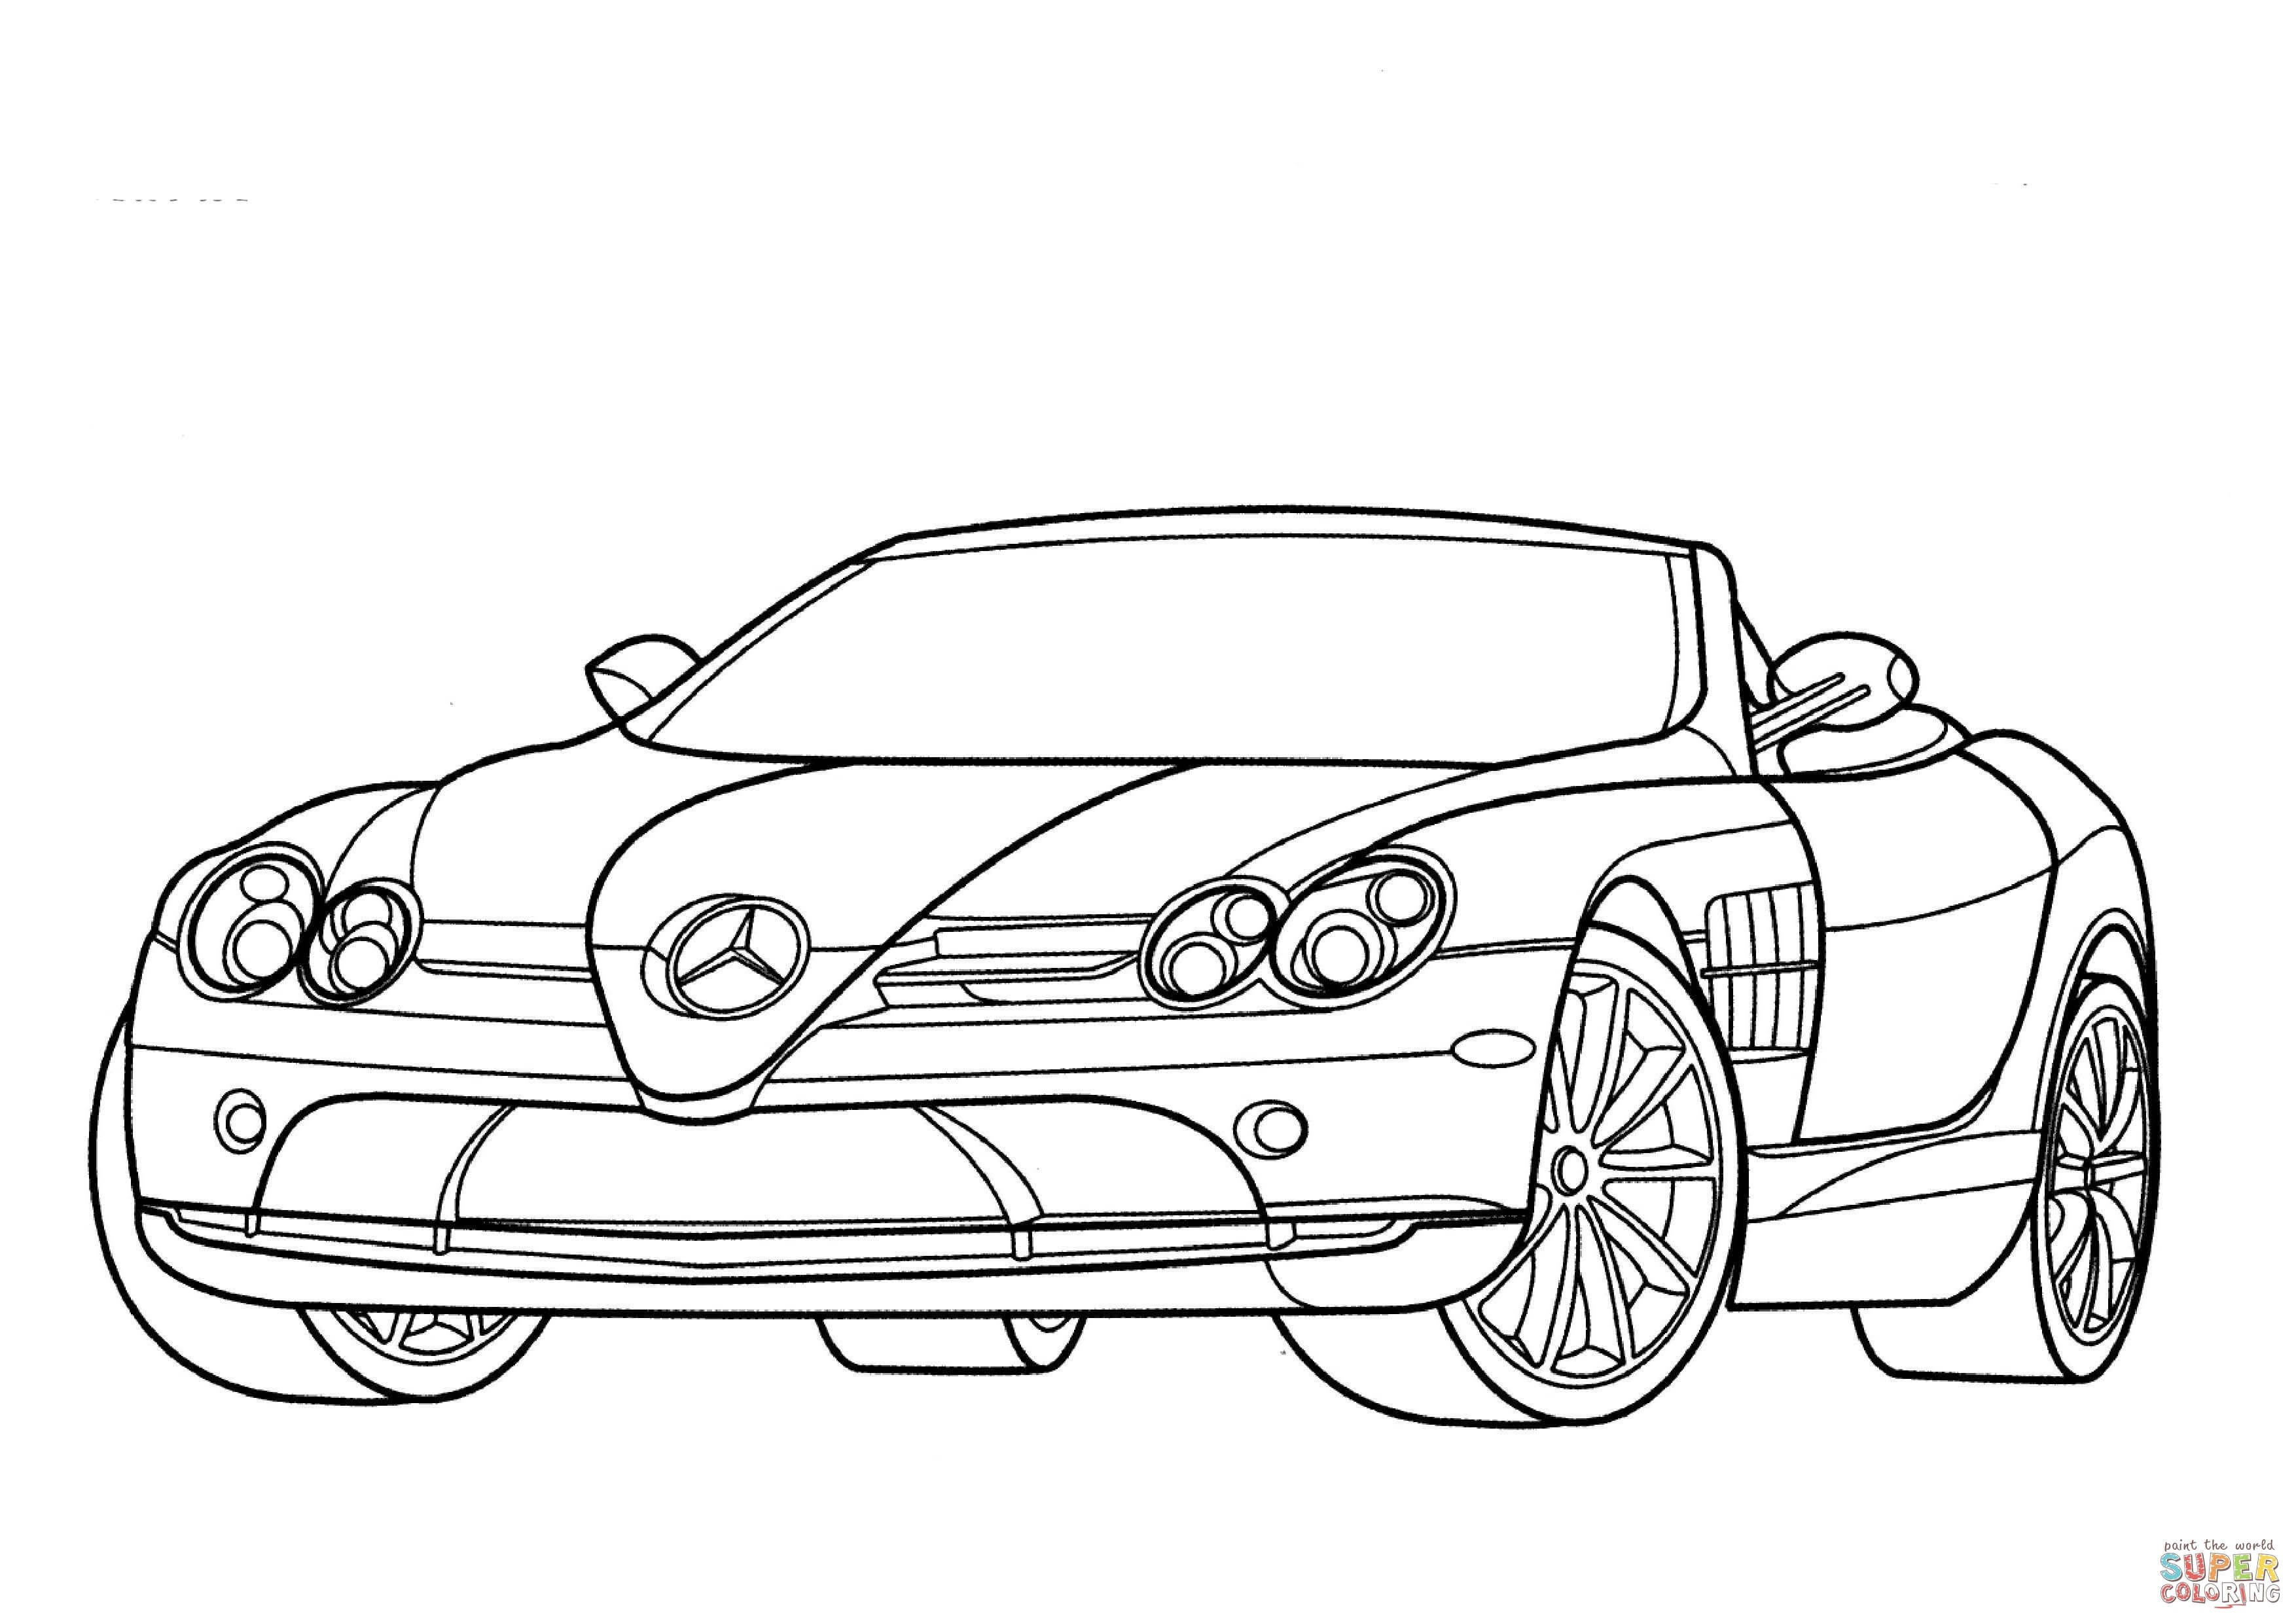 3508x2480 super car mclaren f1 lm coloring page awesome nissan gt r coloring